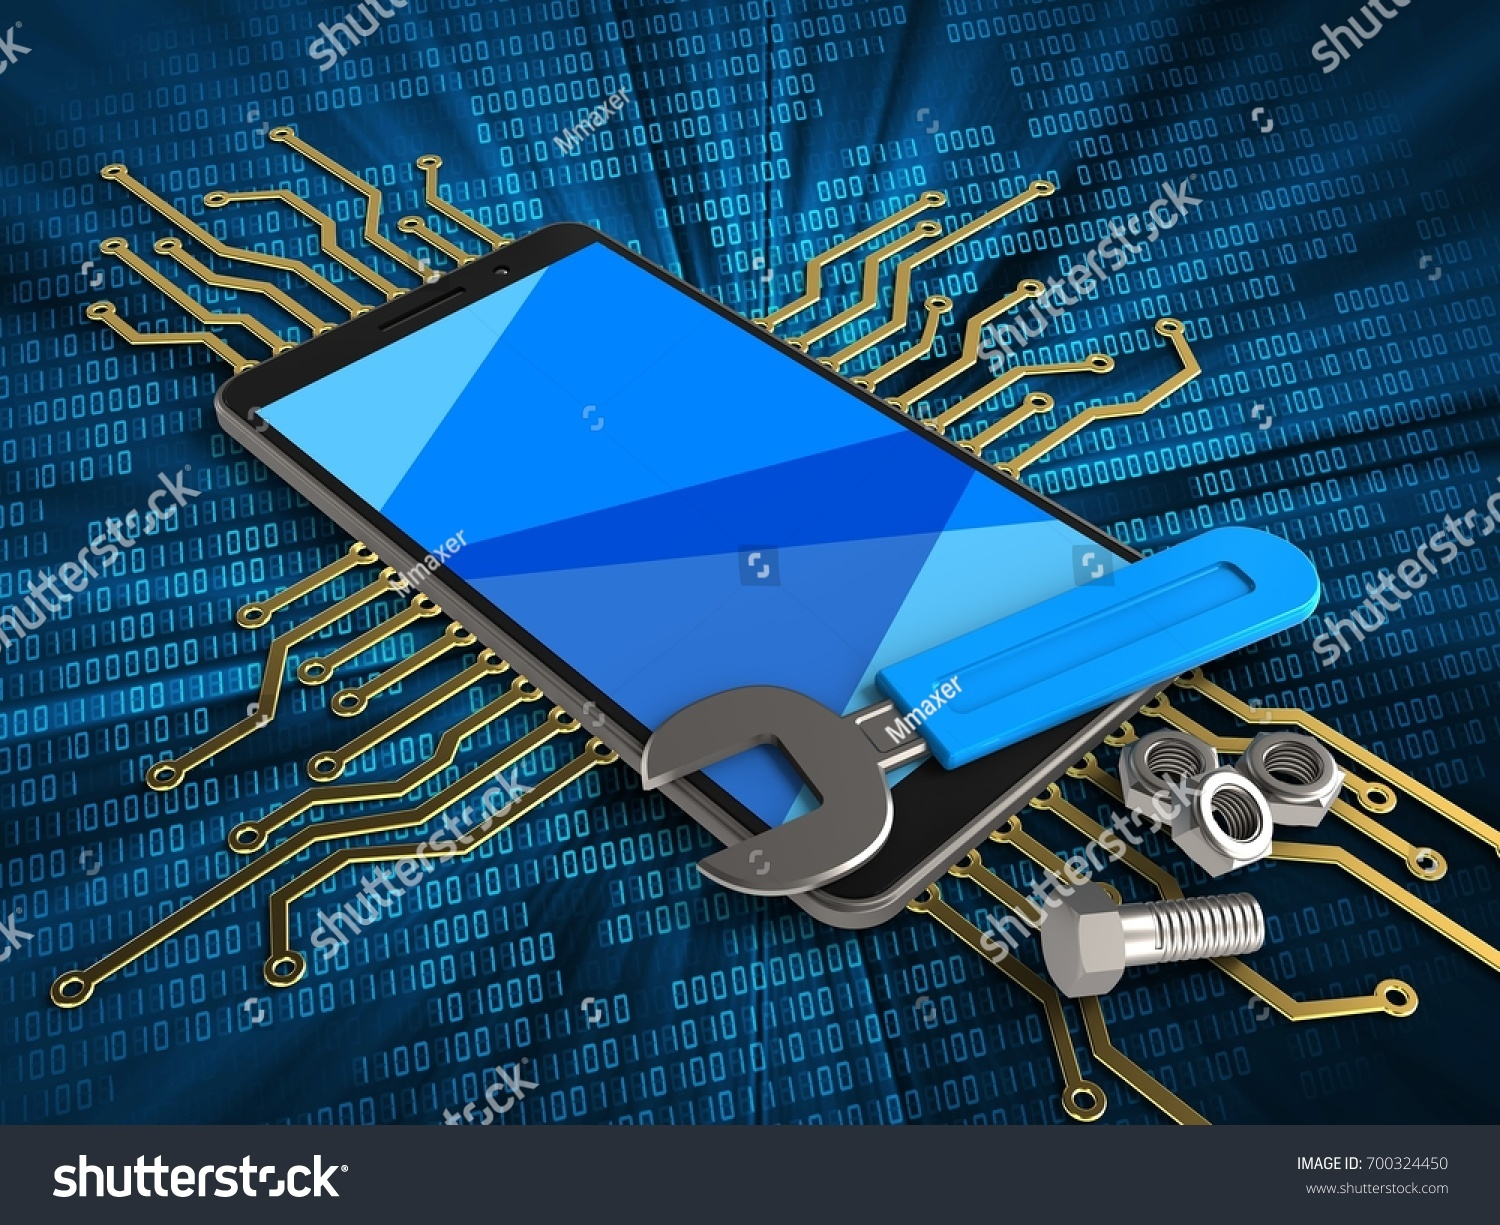 3d Illustration Of Mobile Phone Over Digital Background With Digitalelectroniccircuits1jpg Electronic Circuit And Money Ez Canvas